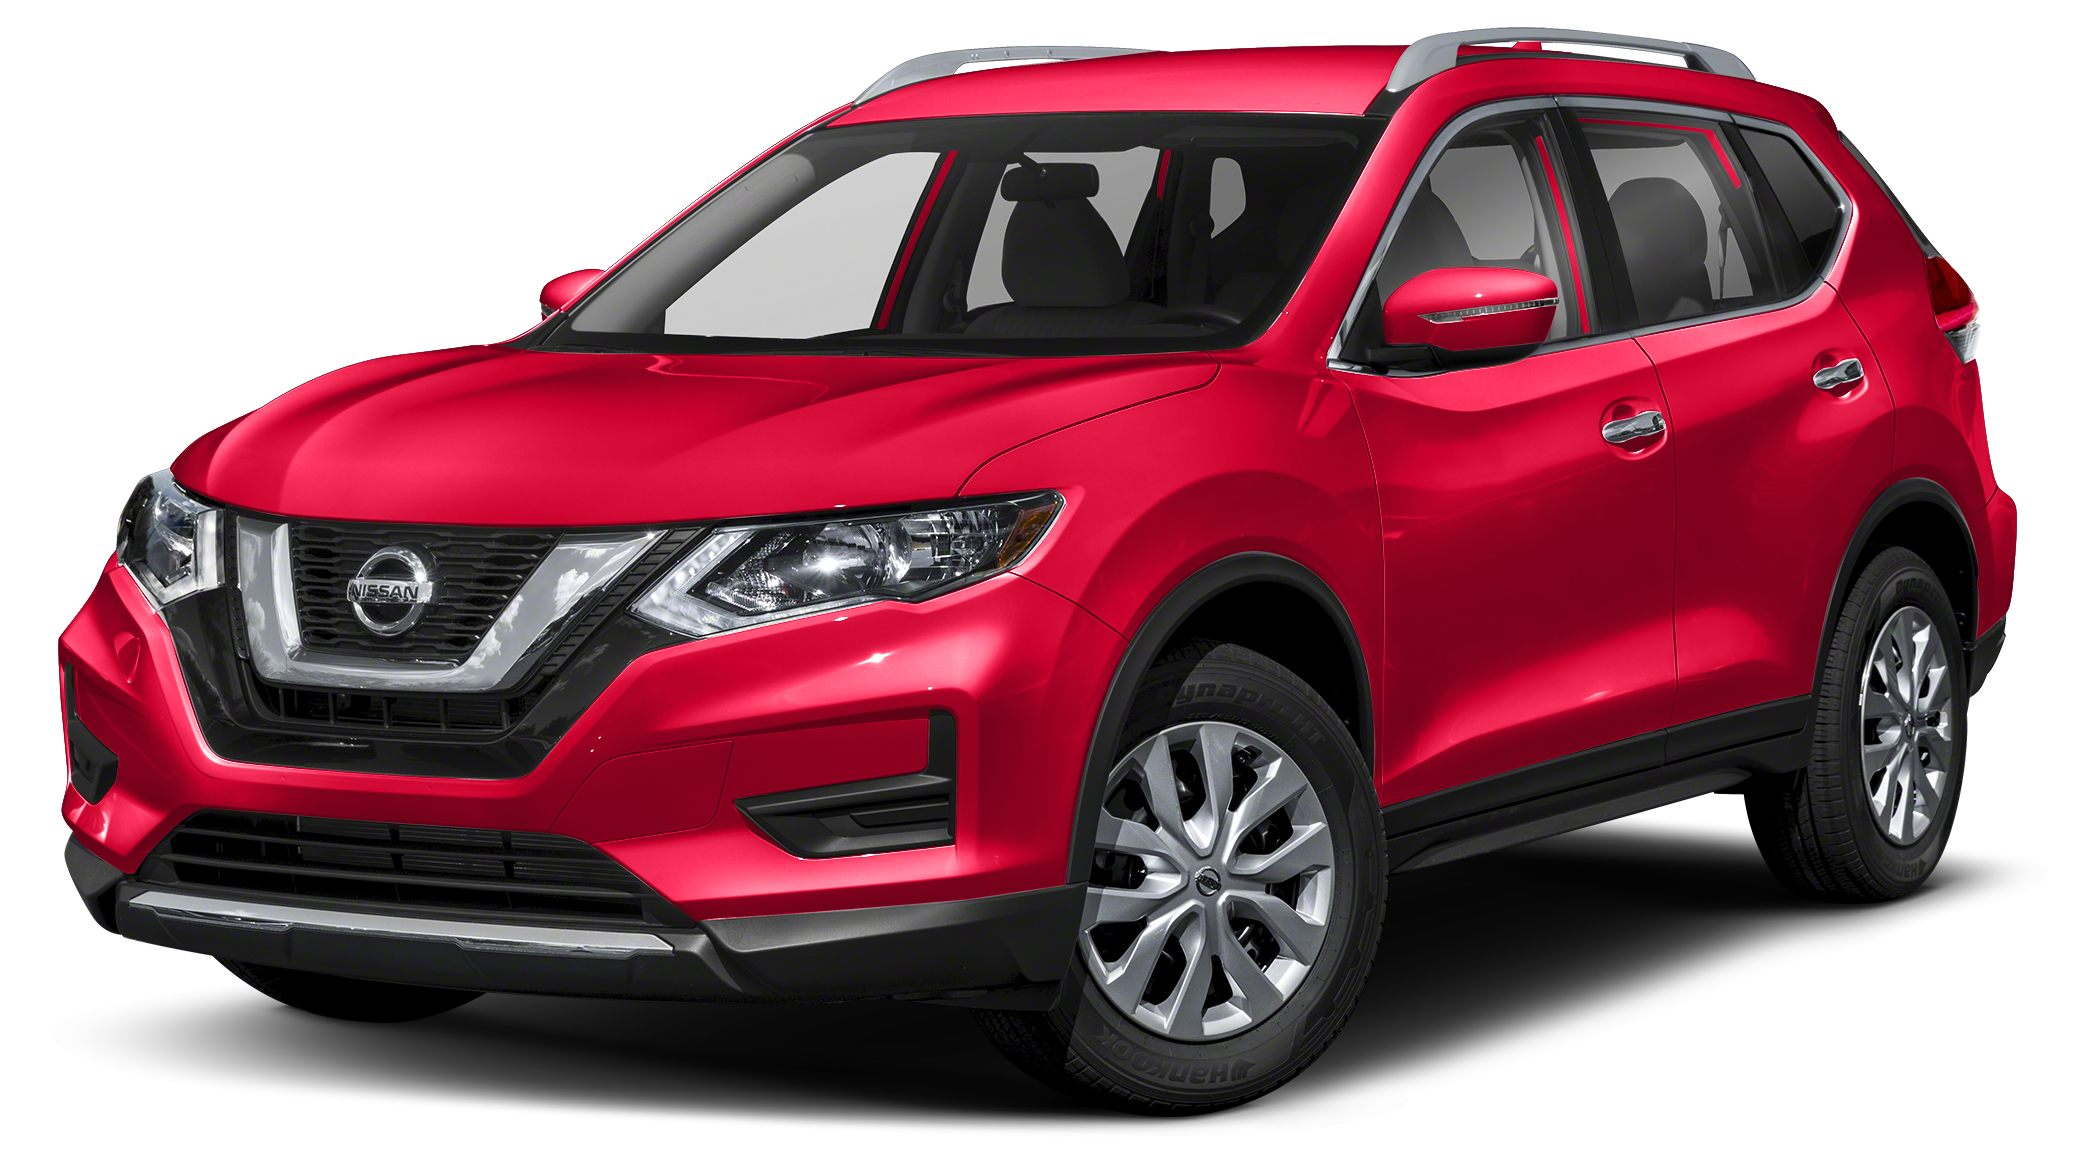 2017 Nissan Rogue S New Arrival -Great Gas Mileage- Bluetooth This 2017 Nissan Rogue S is Palat